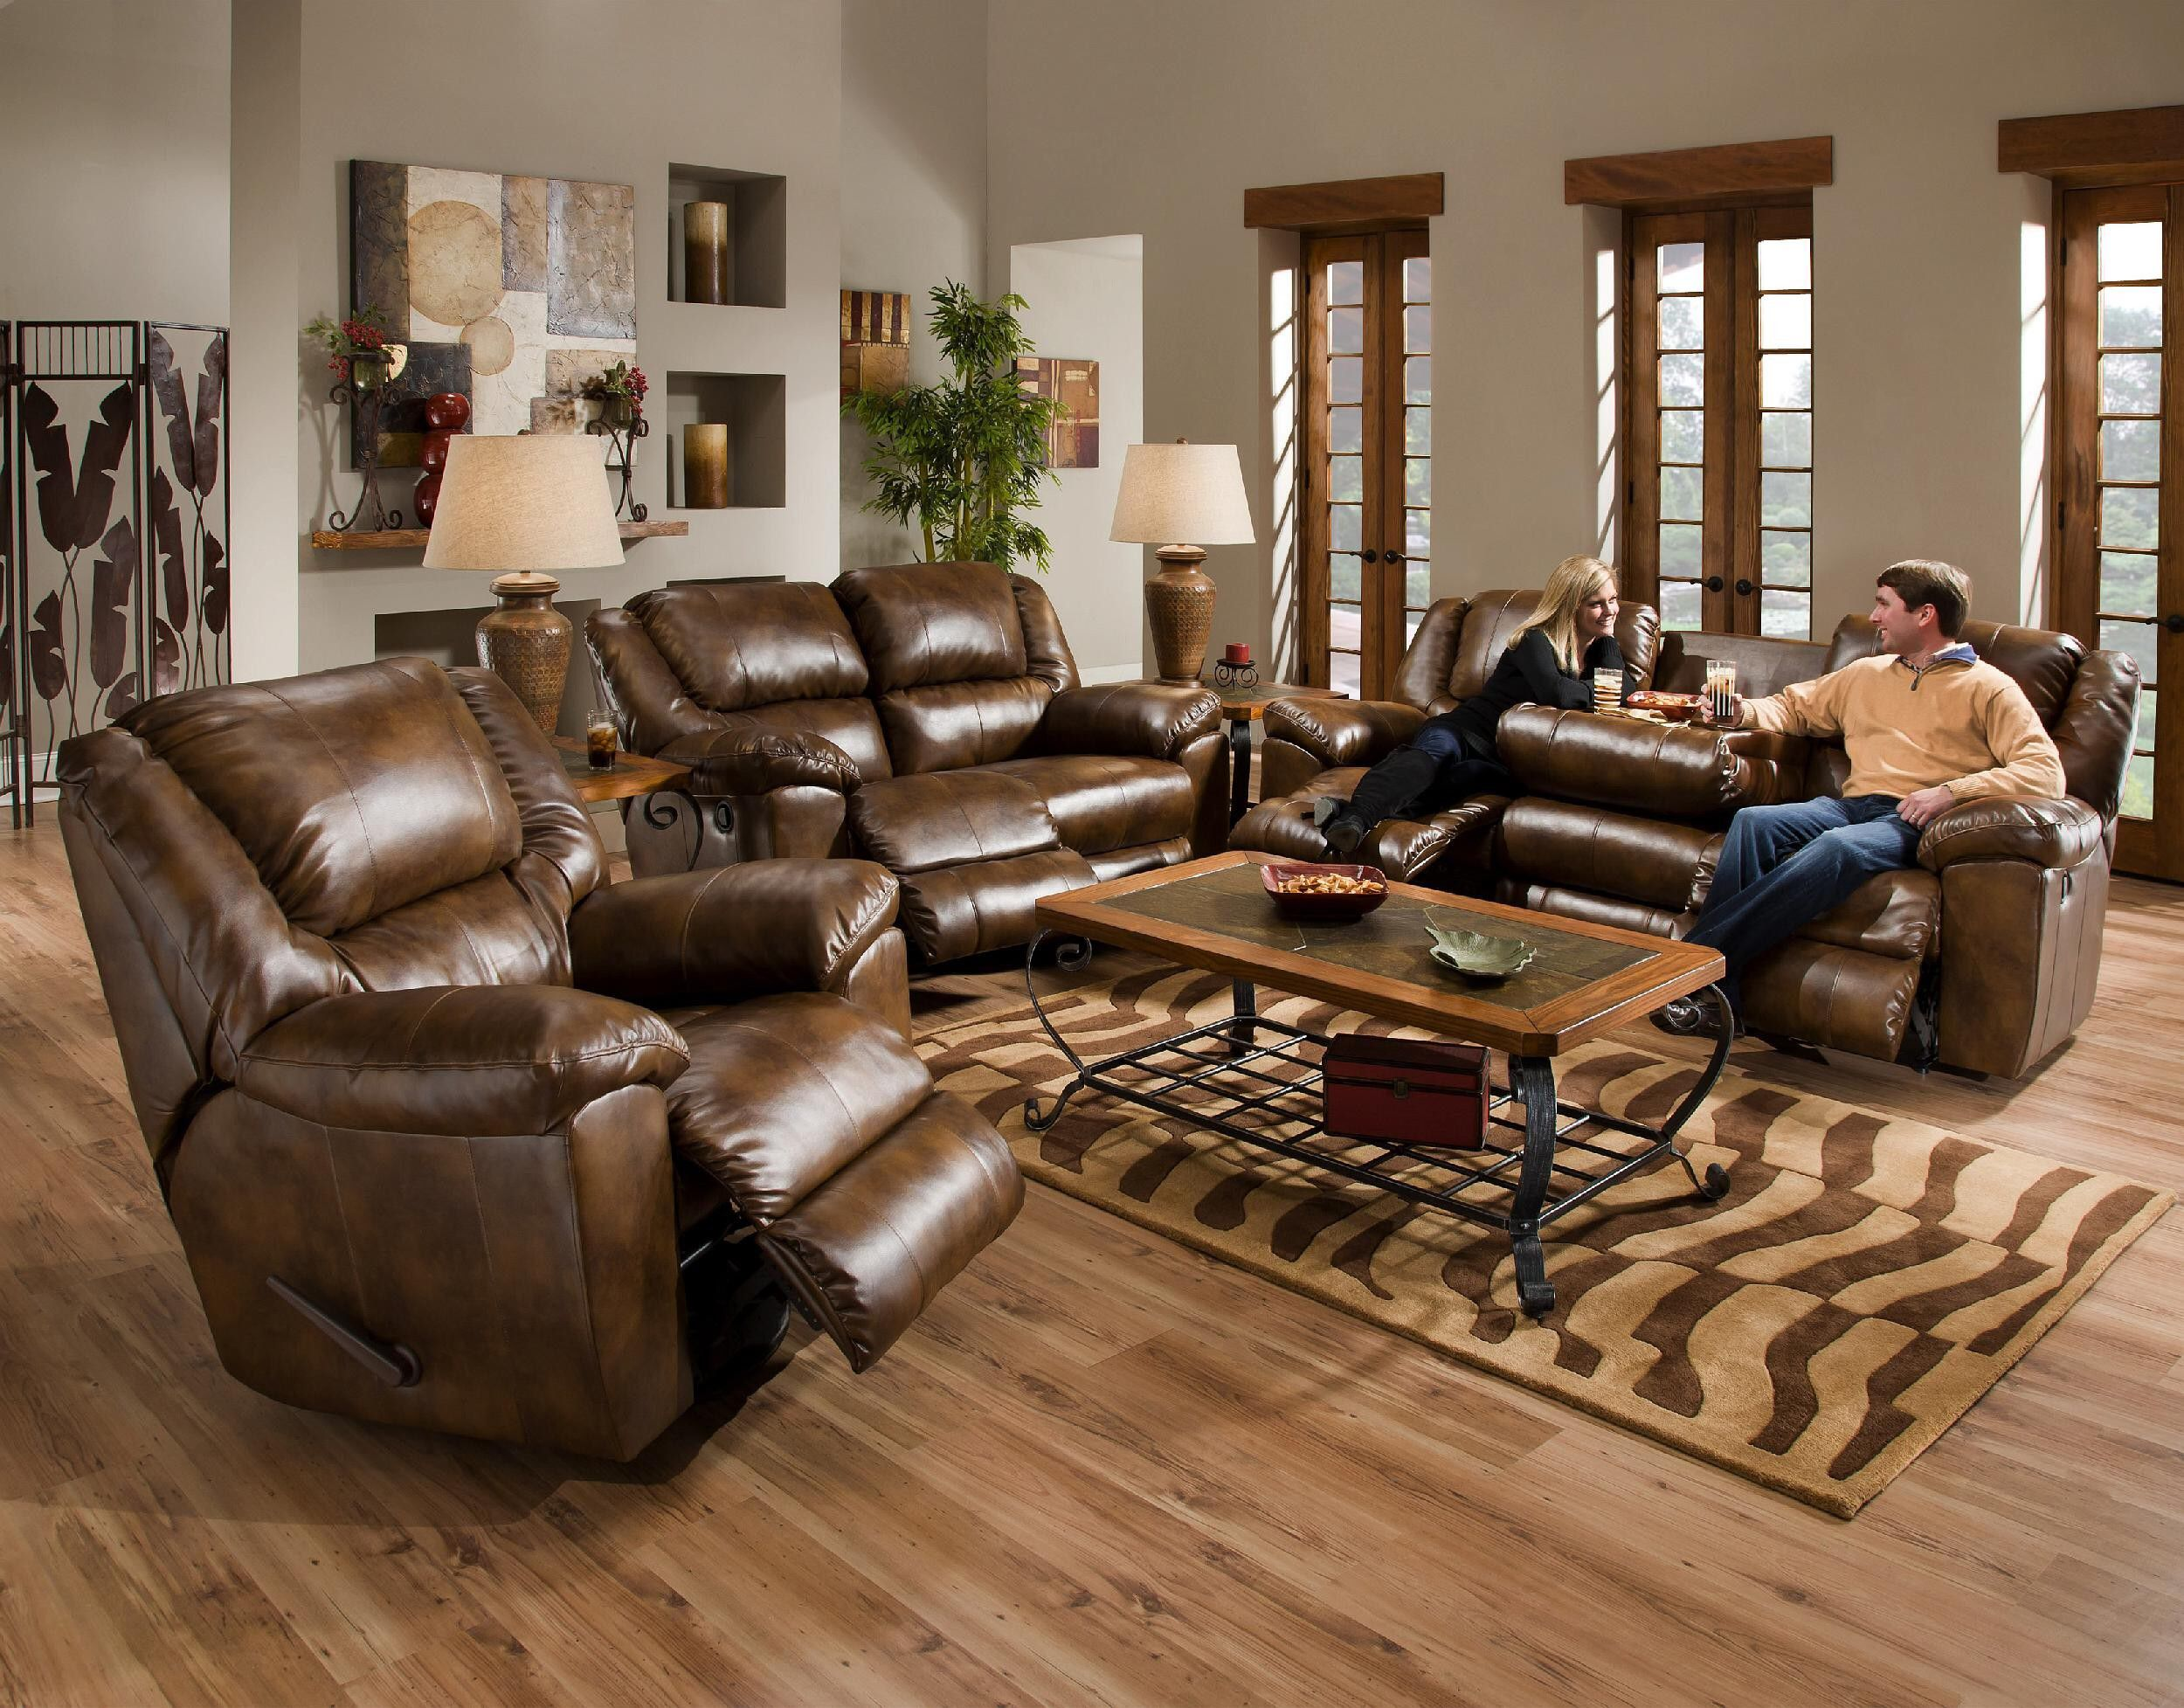 Idea Of How To Decorate A Living Room With Leather Couch  Living Best Living Room Designs With Leather Furniture Review